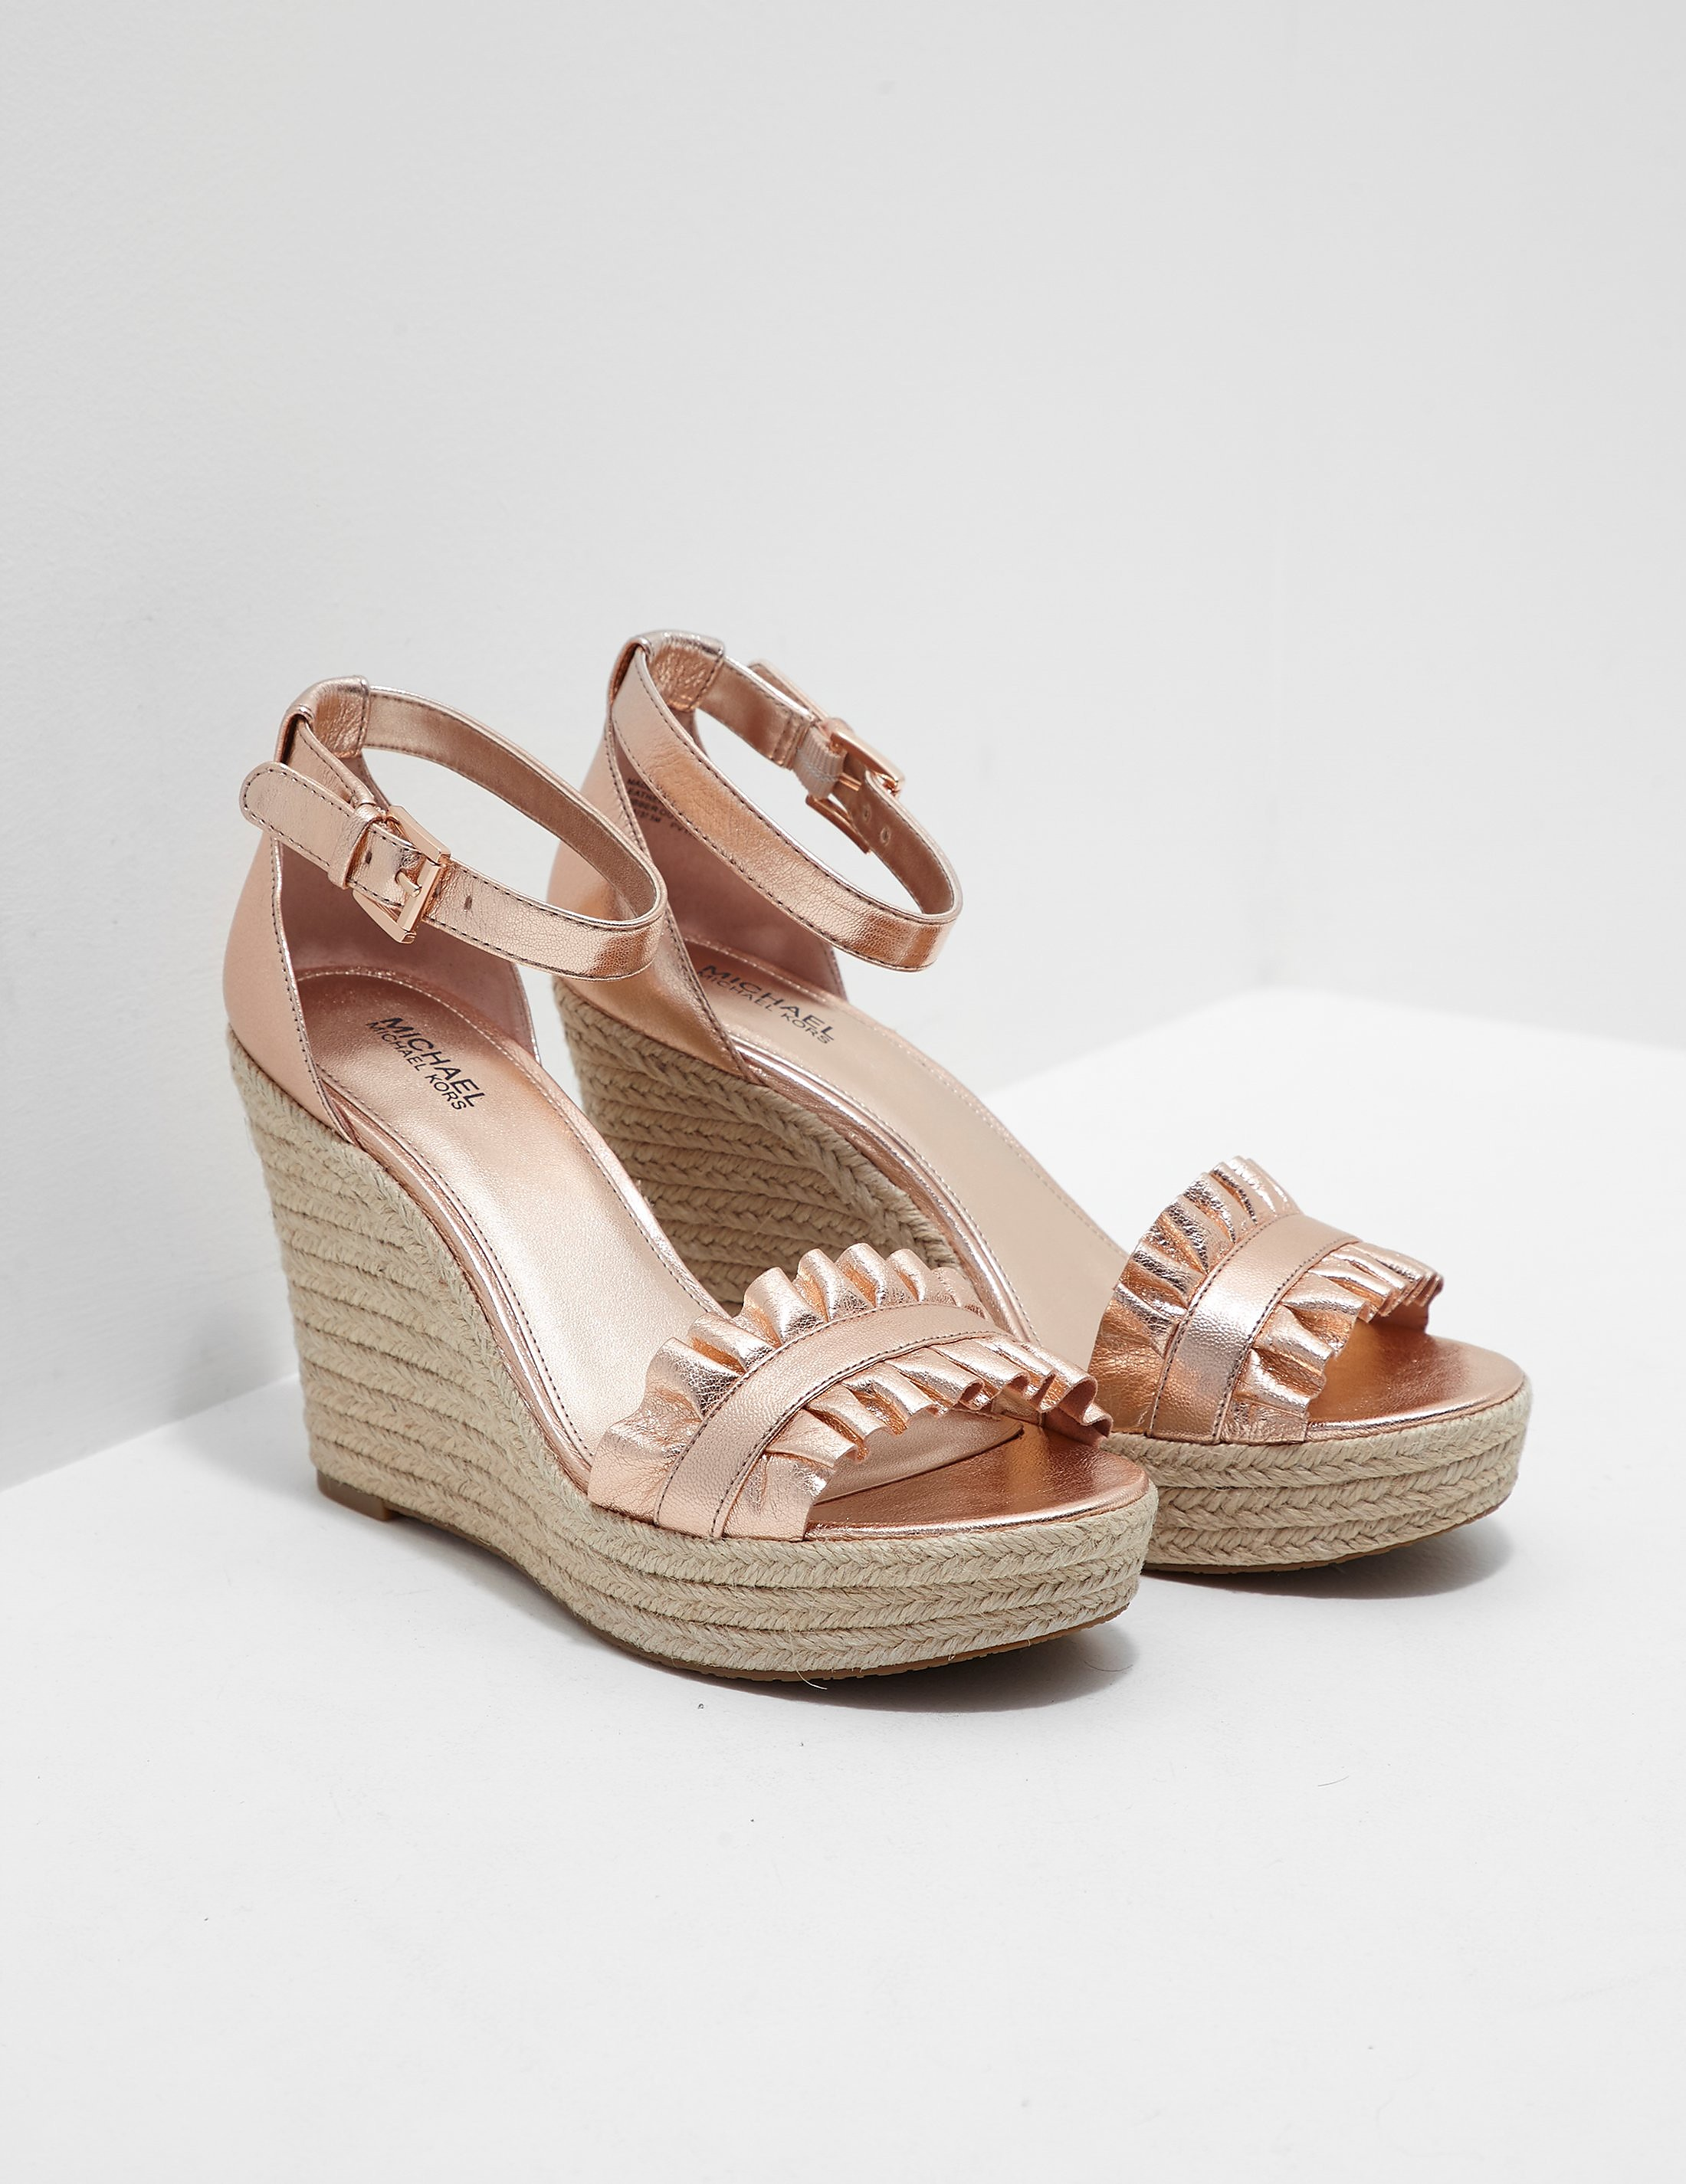 Michael Kors Bella Wedges